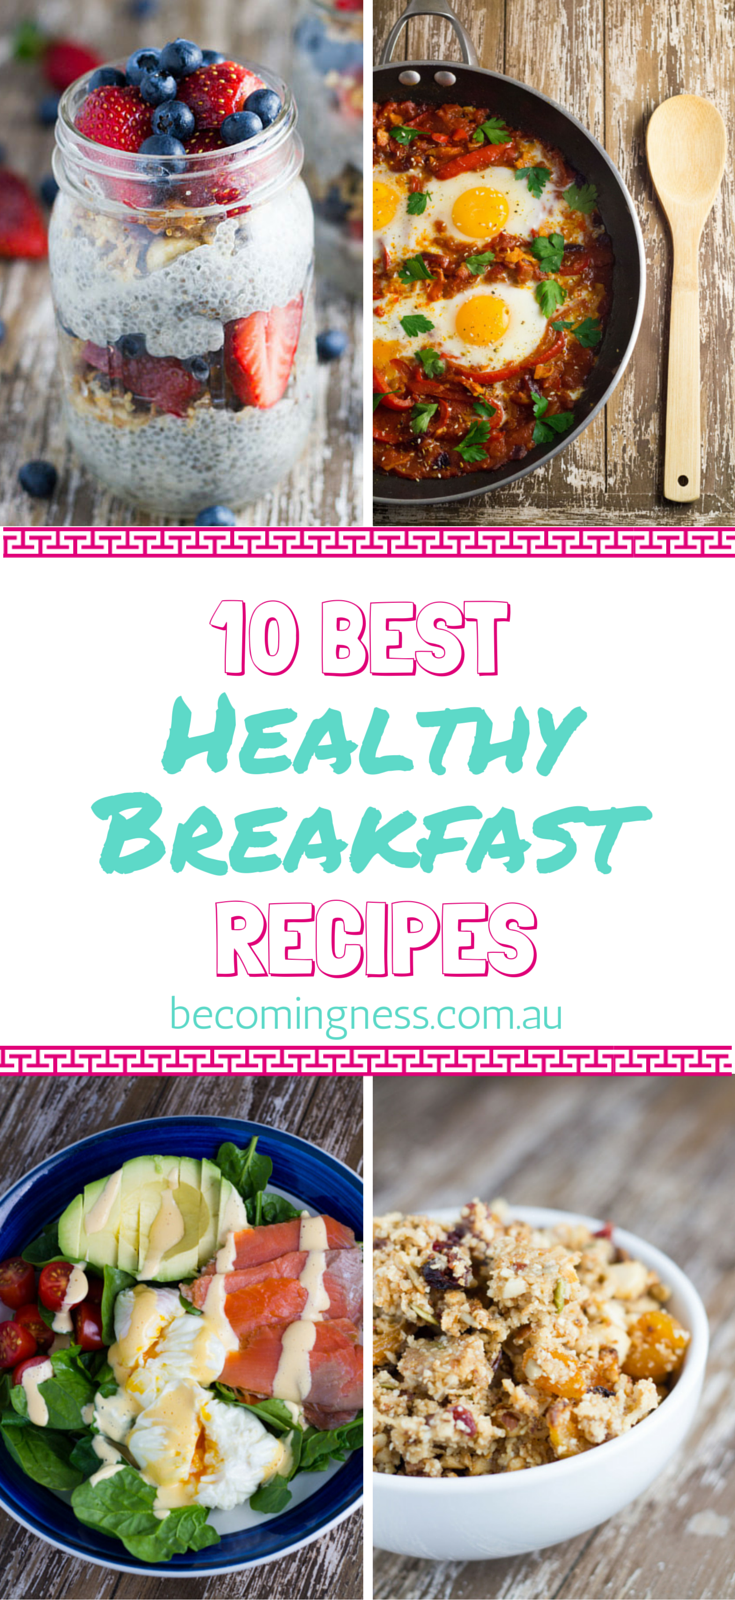 10-best-healthy-breakfast-recipes.png